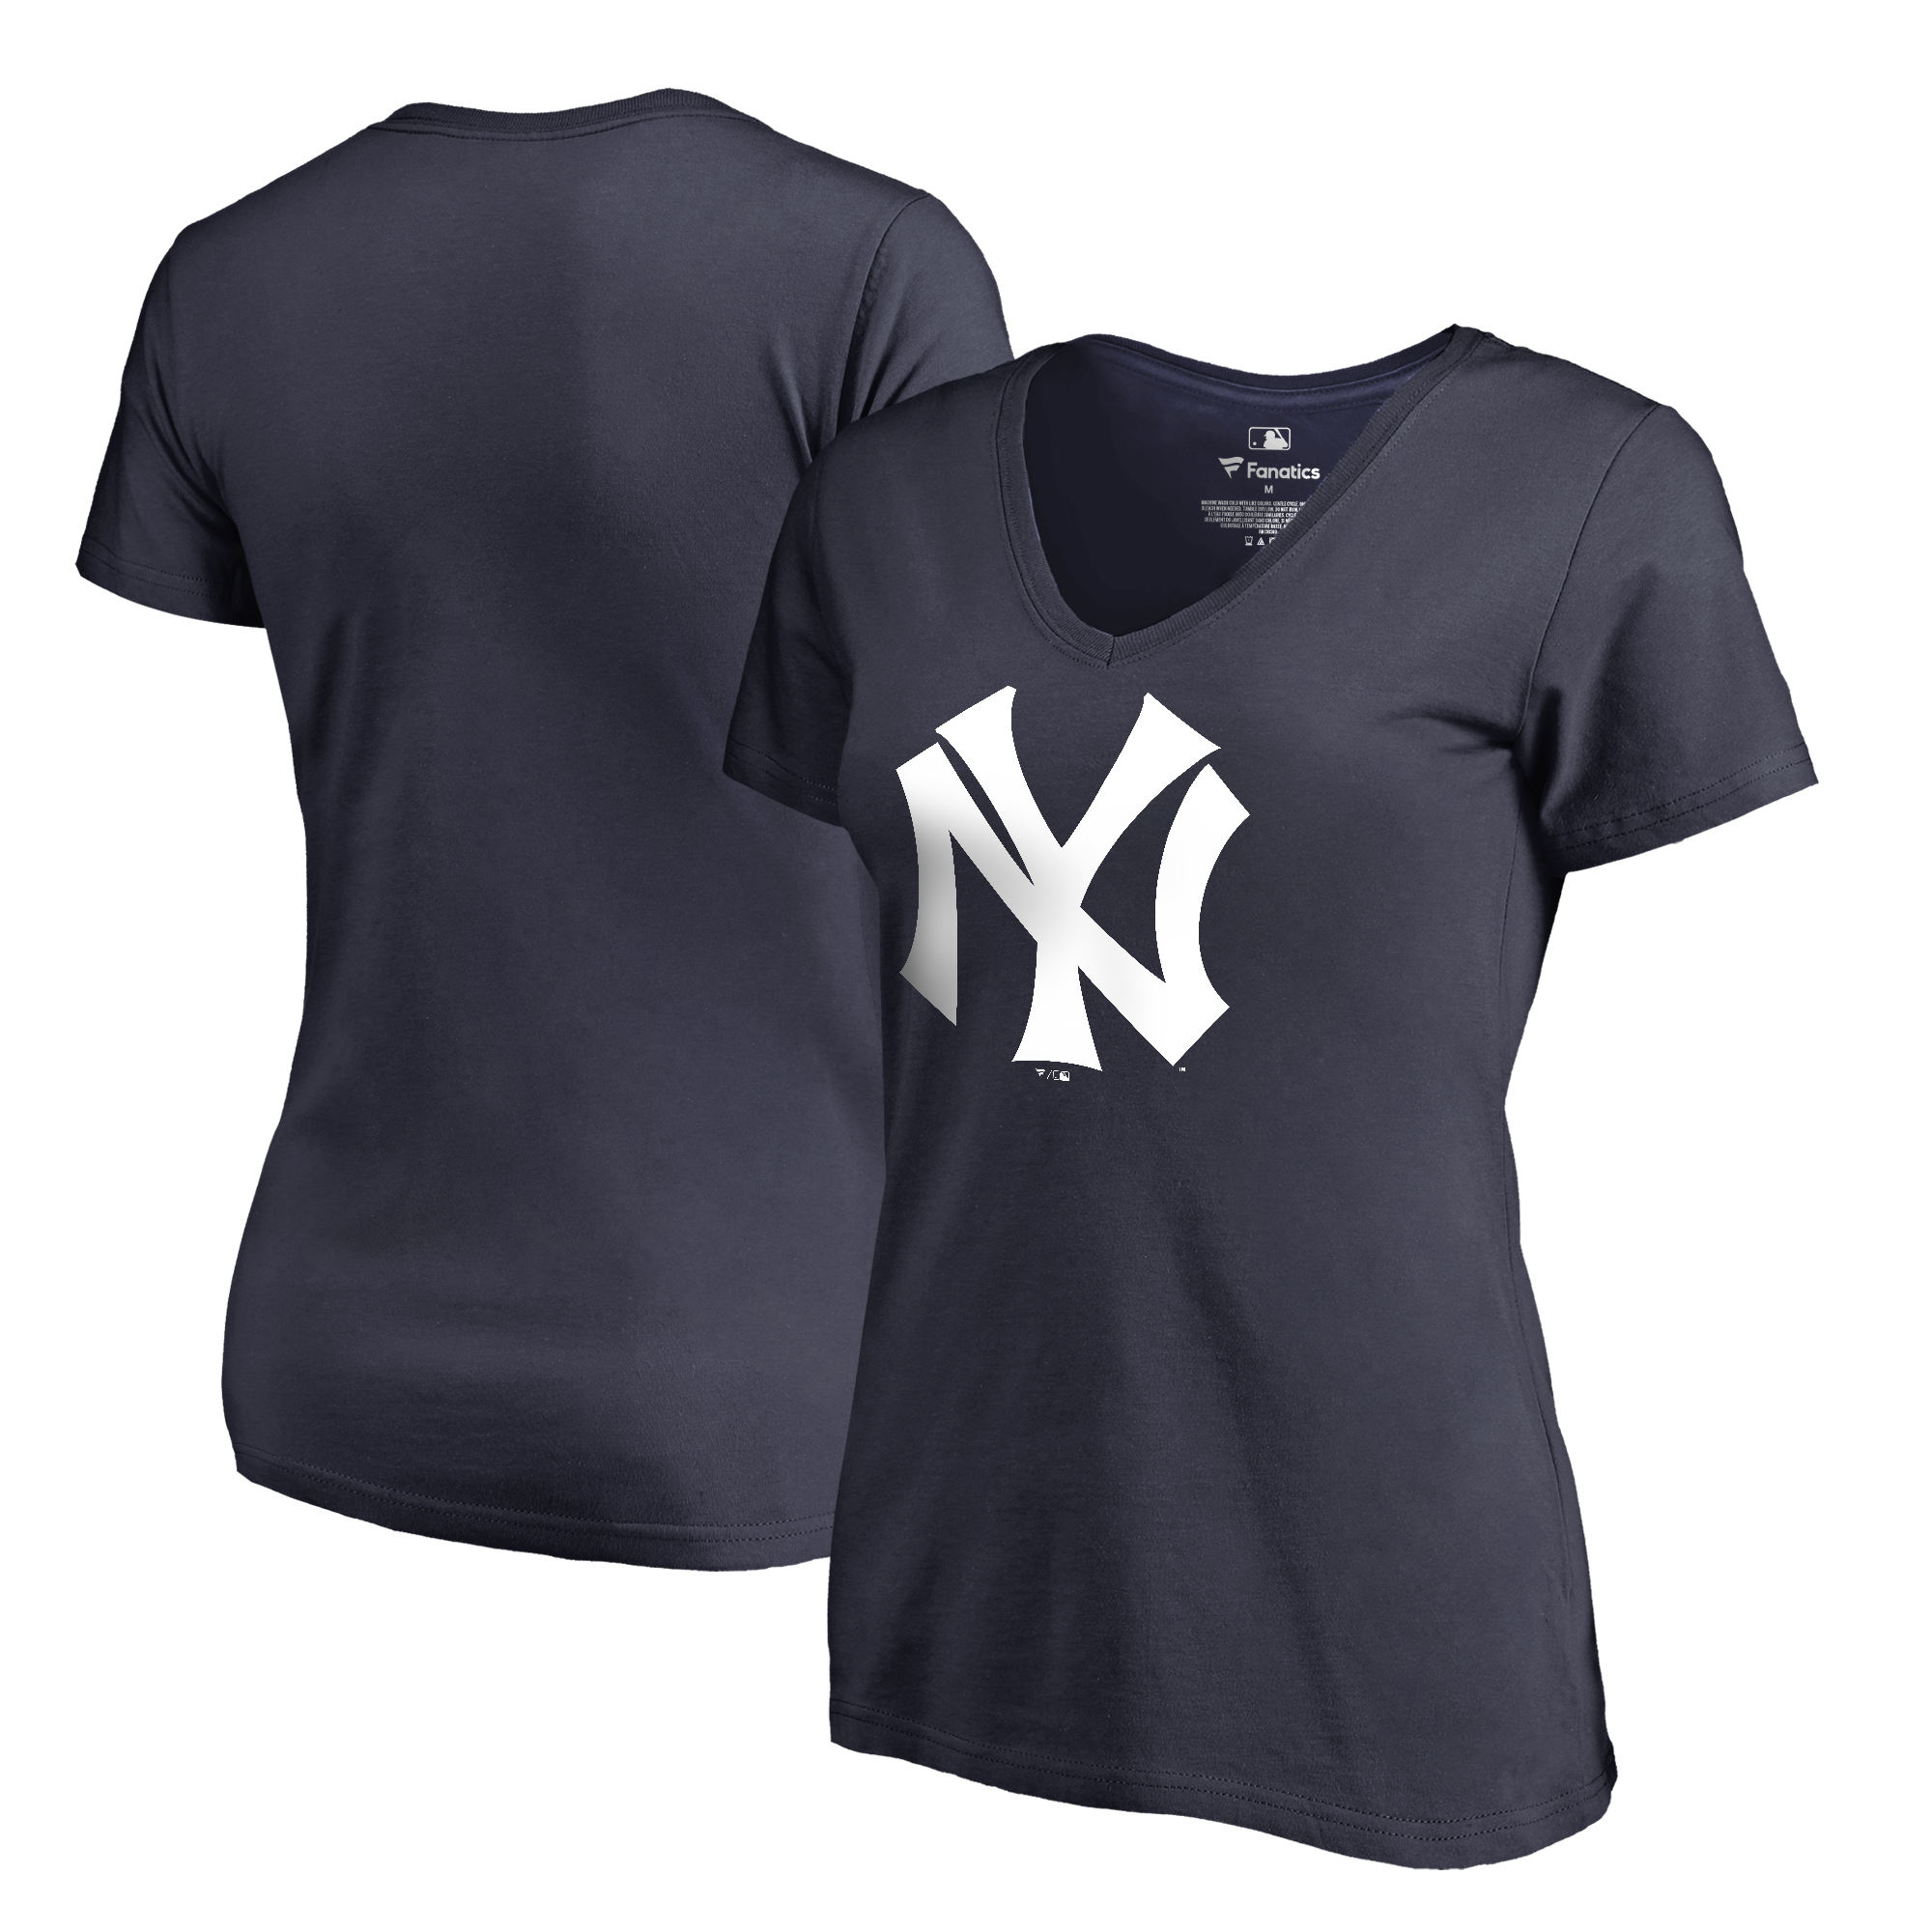 New York Yankees Fanatics Branded Women's Cooperstown Collection Huntington T-Shirt - Navy